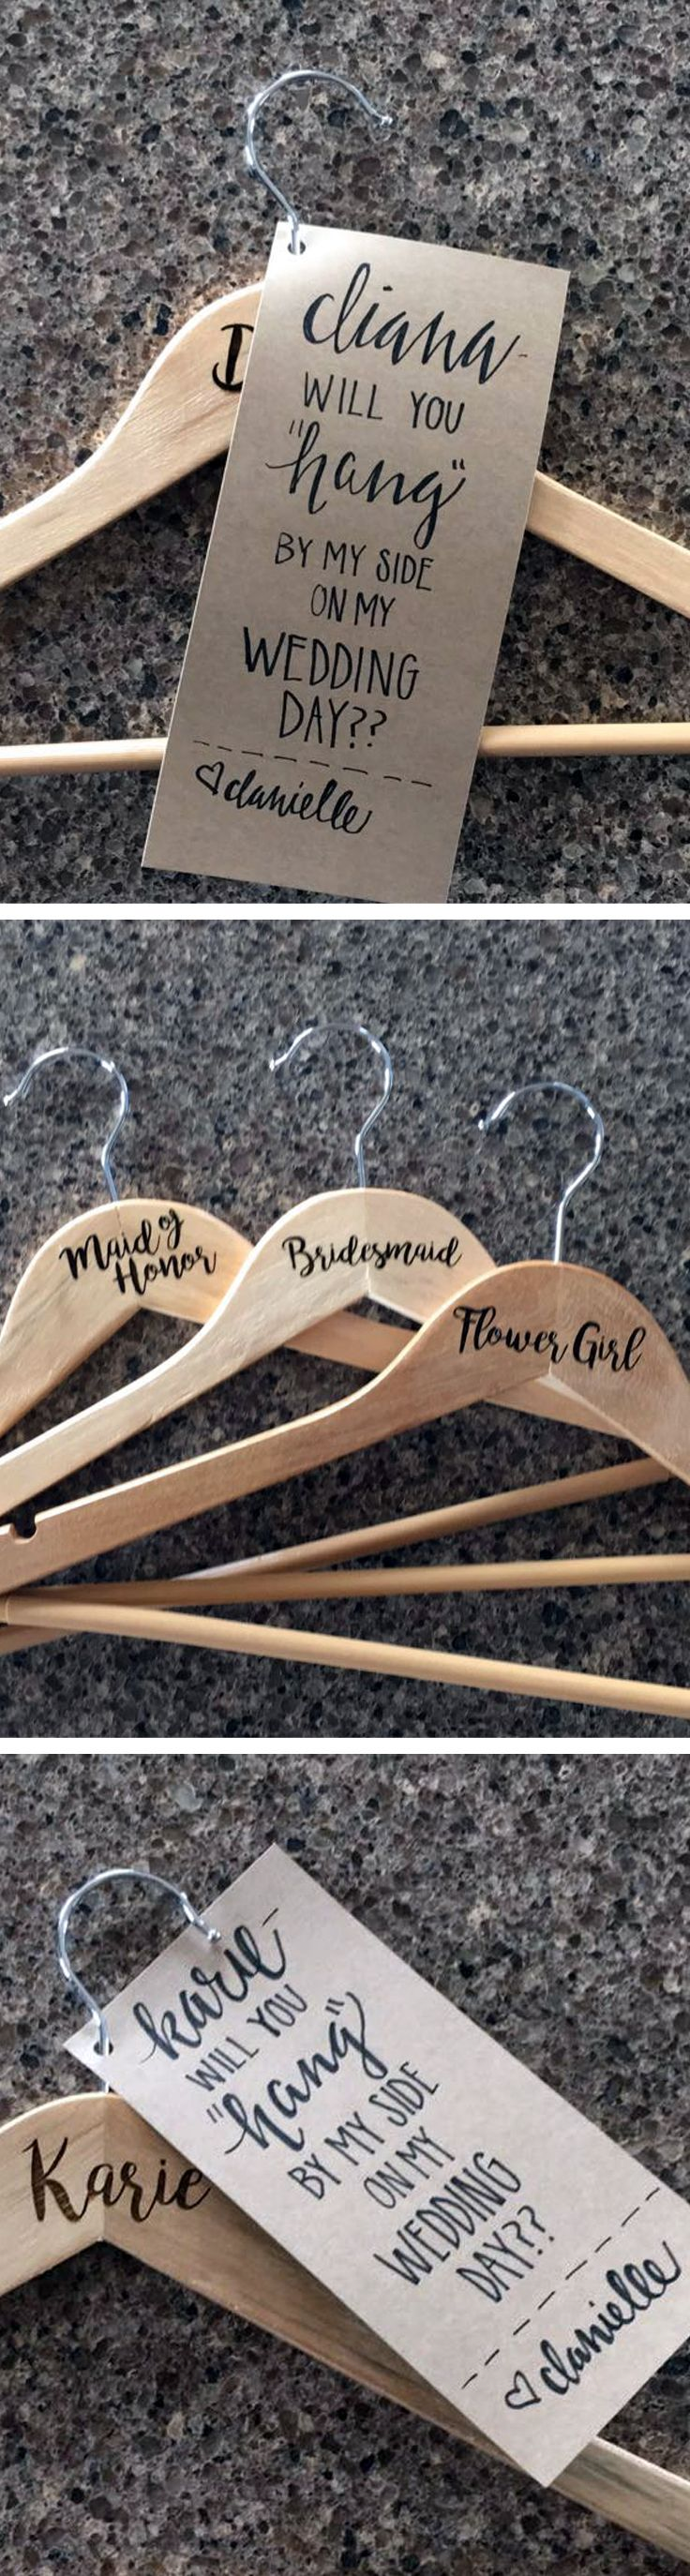 """Will You Hang by My Side"" Hangers for Bridesmaid Proposals  by Molly Meester Designs"